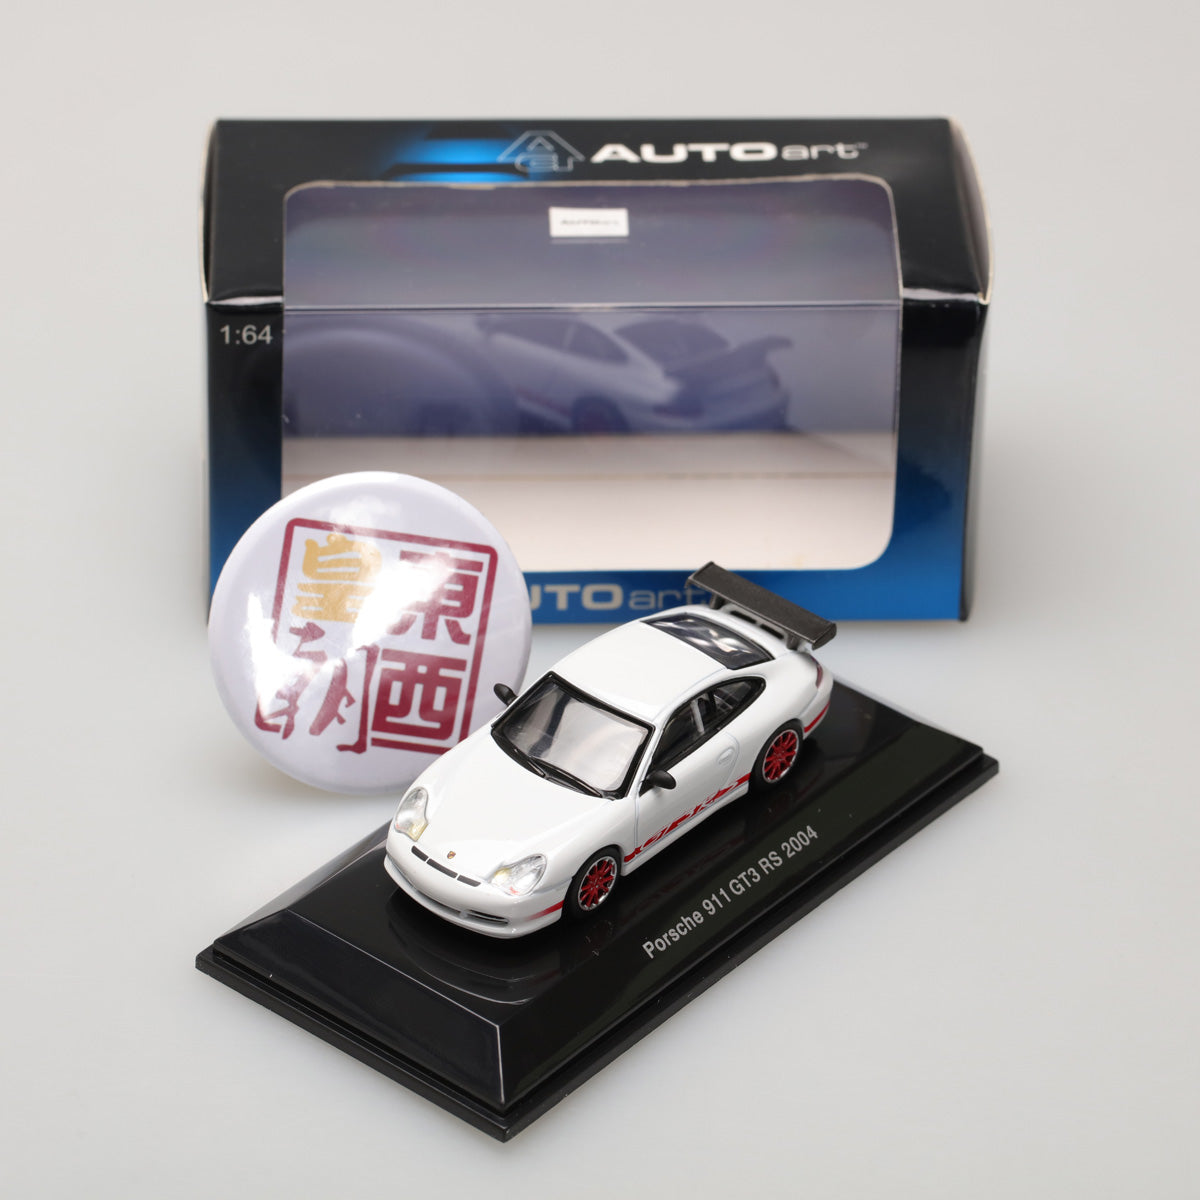 AUTOART 1:64 PORSCHE 911 GT3 RS 2004 - WHITE (RED STRIPE ON TWO SIDES) 28031